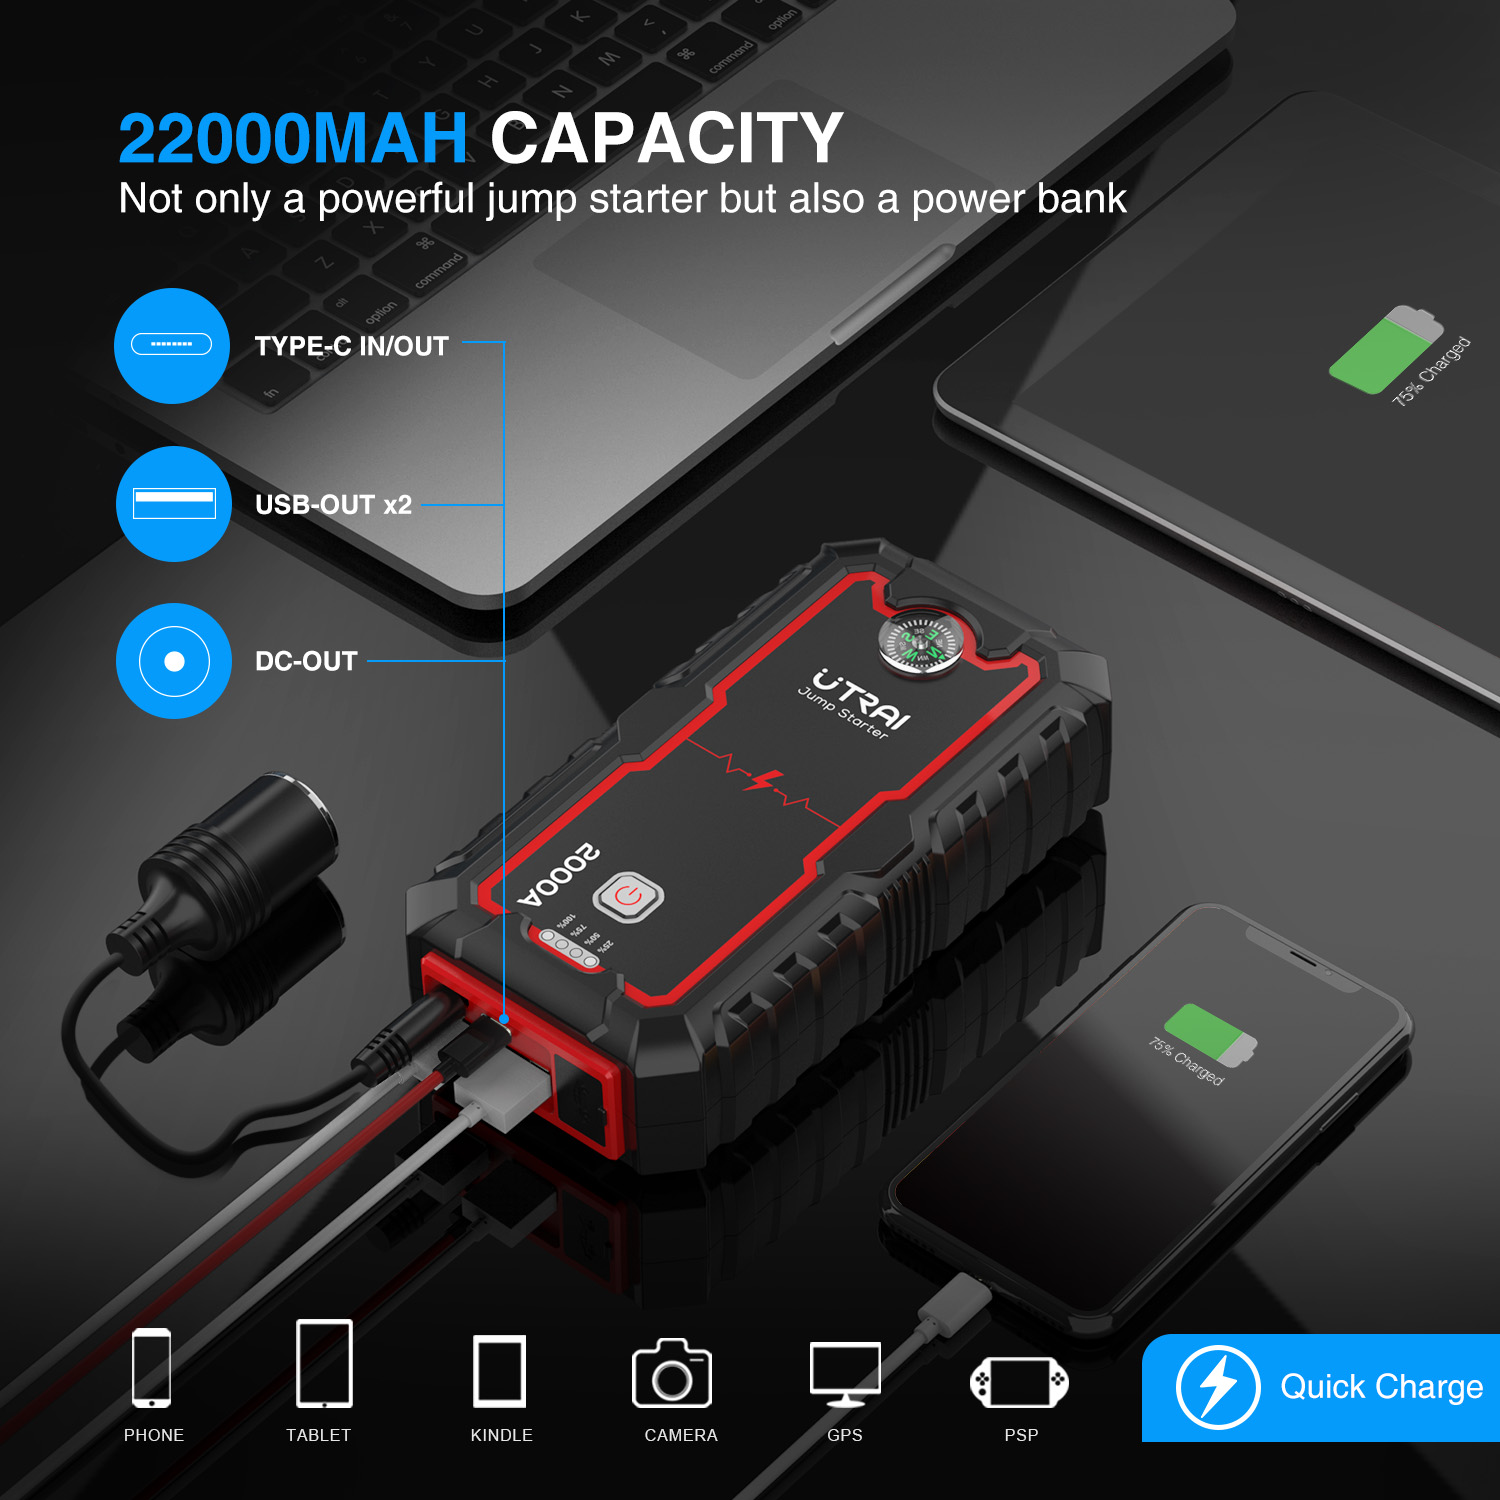 lowest price UTRAI 22000mAh Car Jump Starter Power Bank Portable Emergency Charger Jstar One Car Booster Starting Device Waterproof